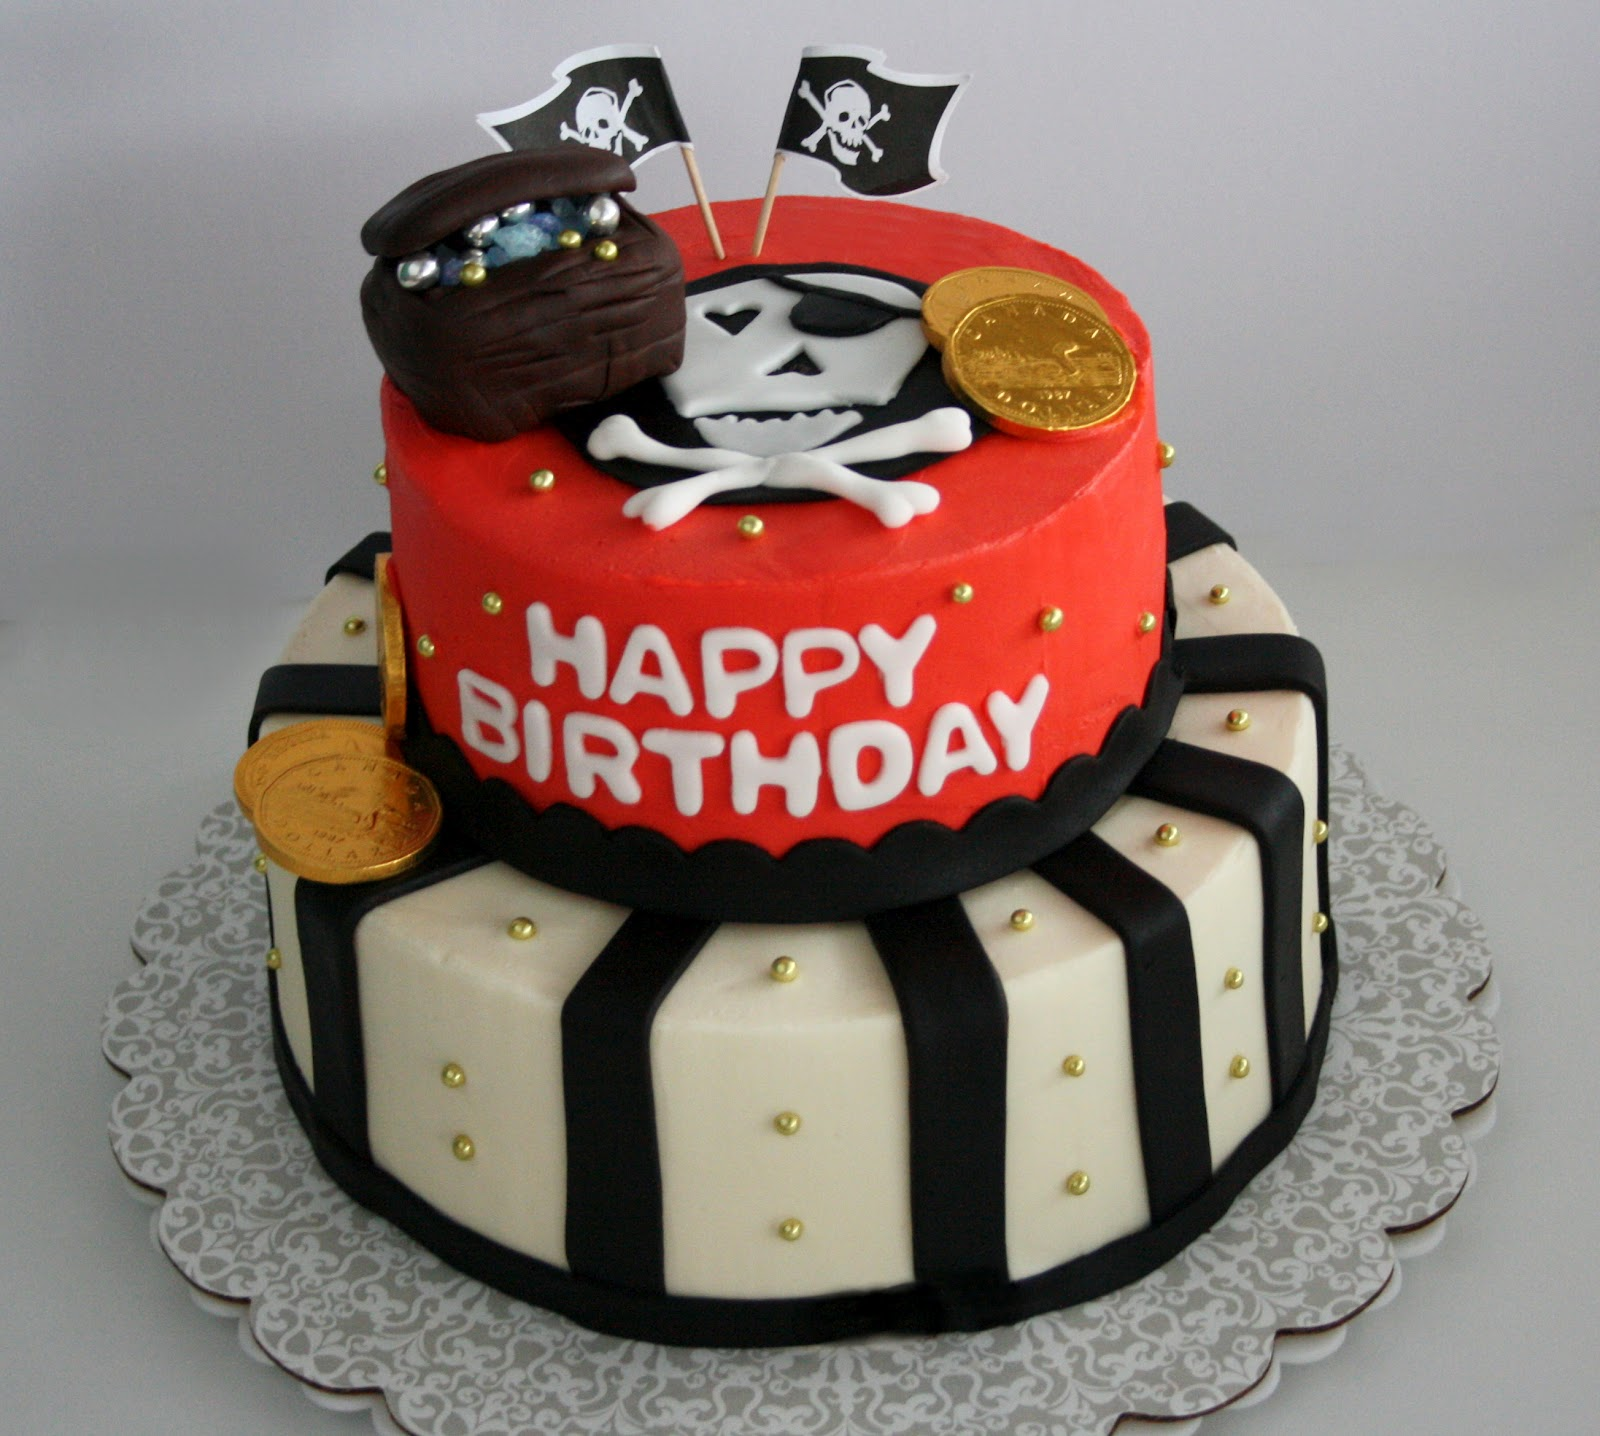 Pirate cake - photo#12